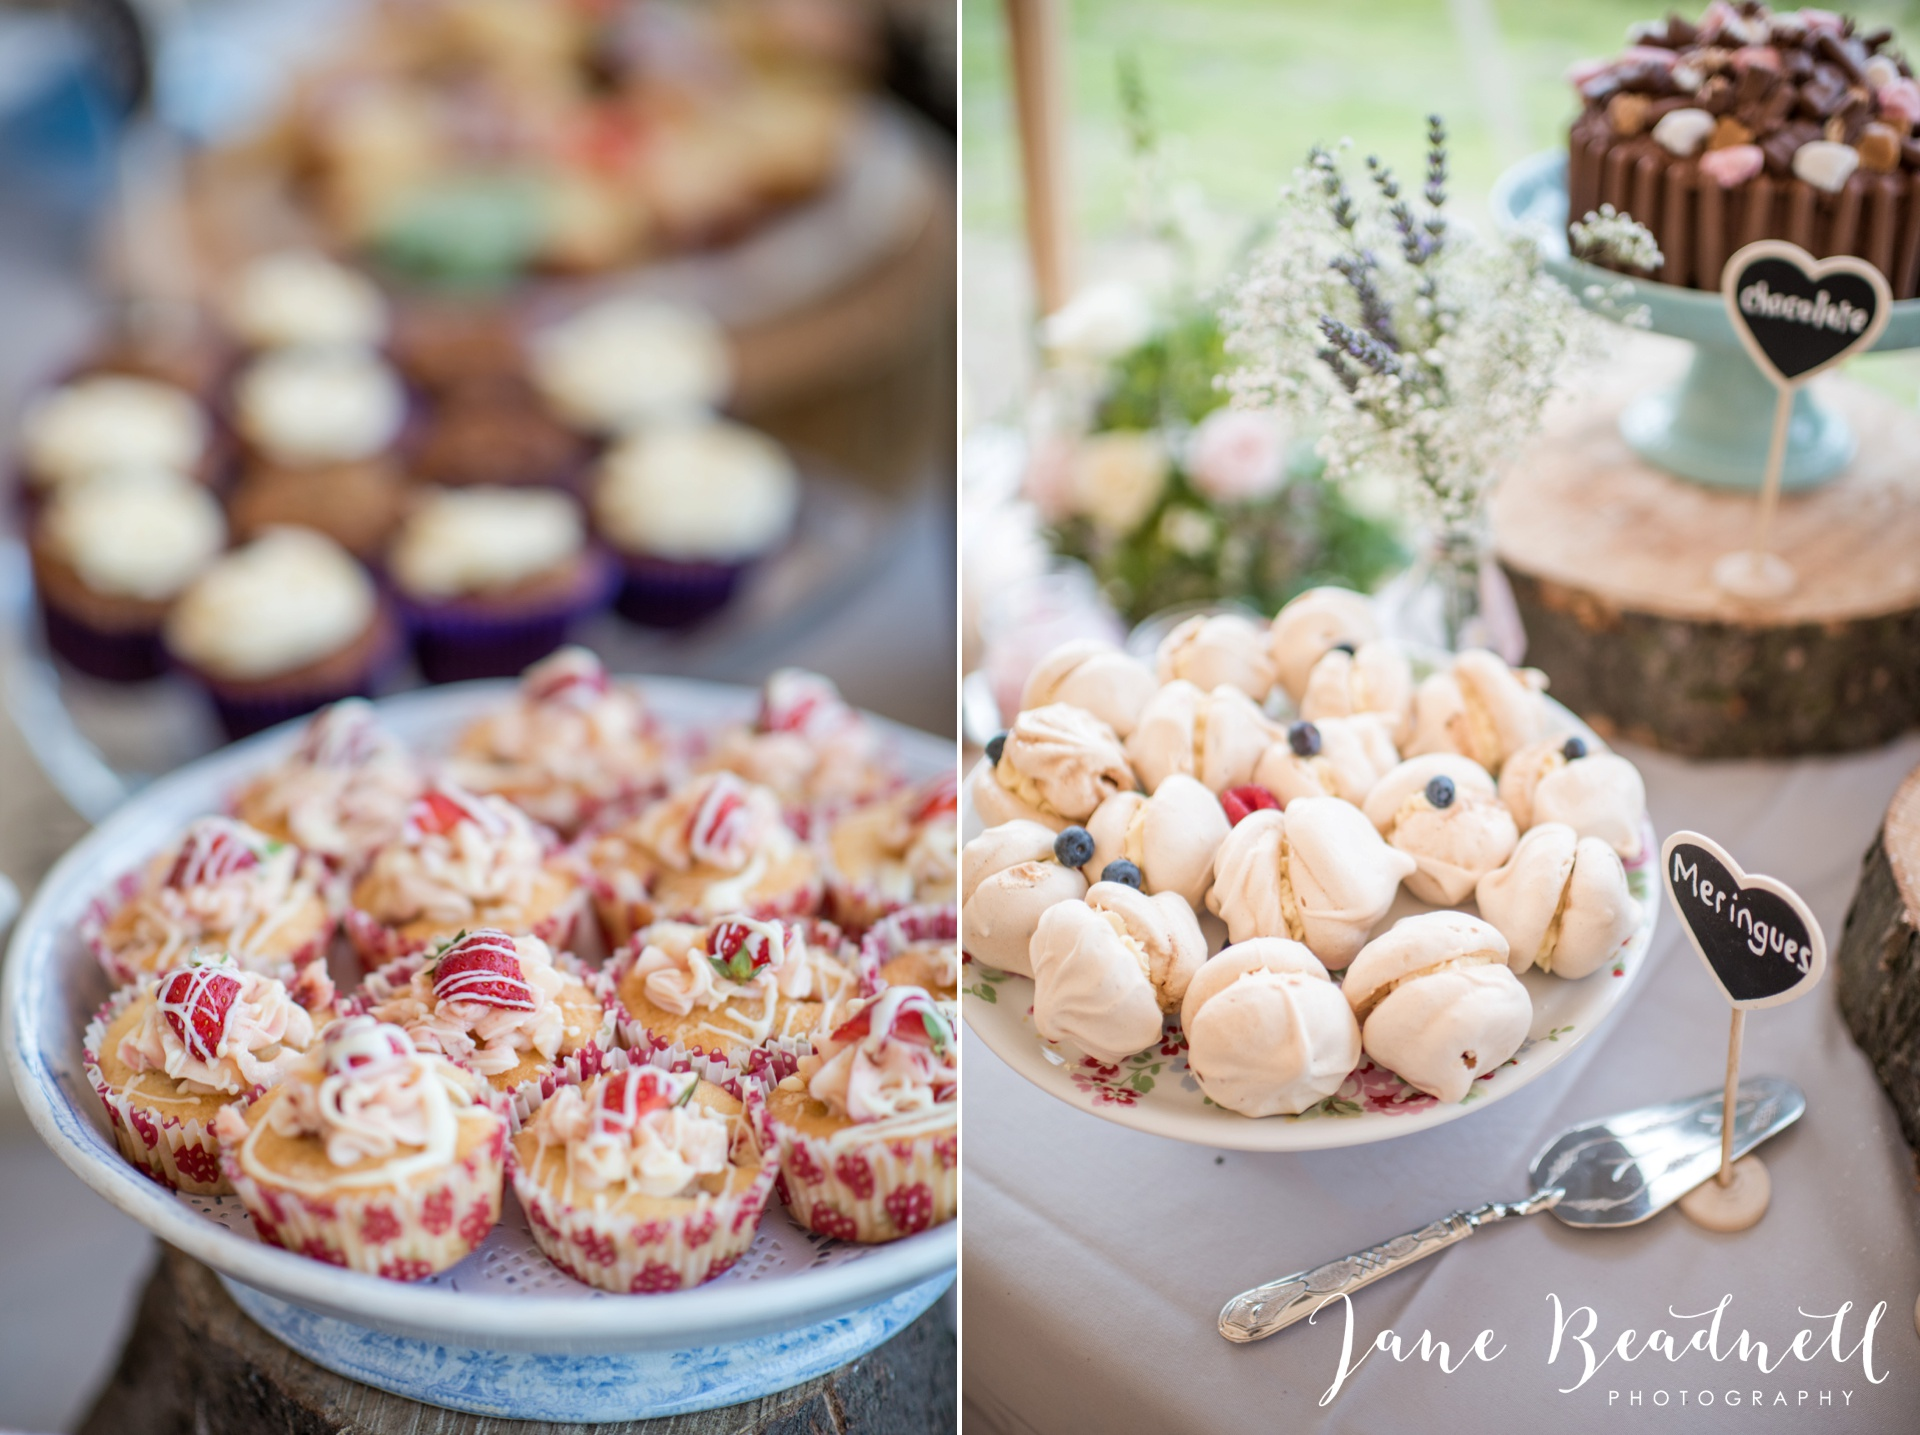 Jane Beadnell fine art wedding photographer Sperry Tent wedding Ilkley_0019